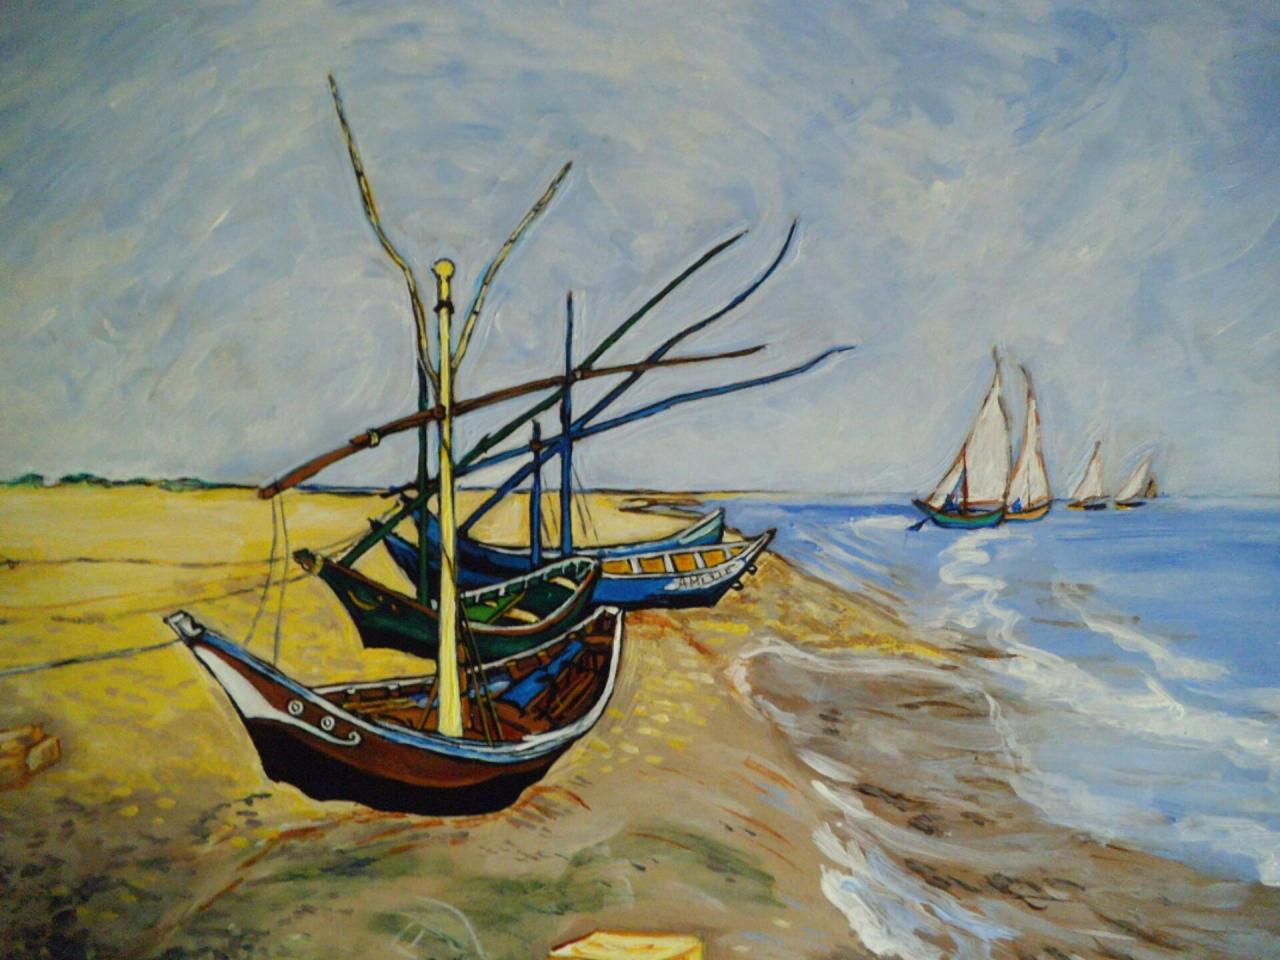 Fishing boats on the beach of Saintes-Maries-de-la-Mer